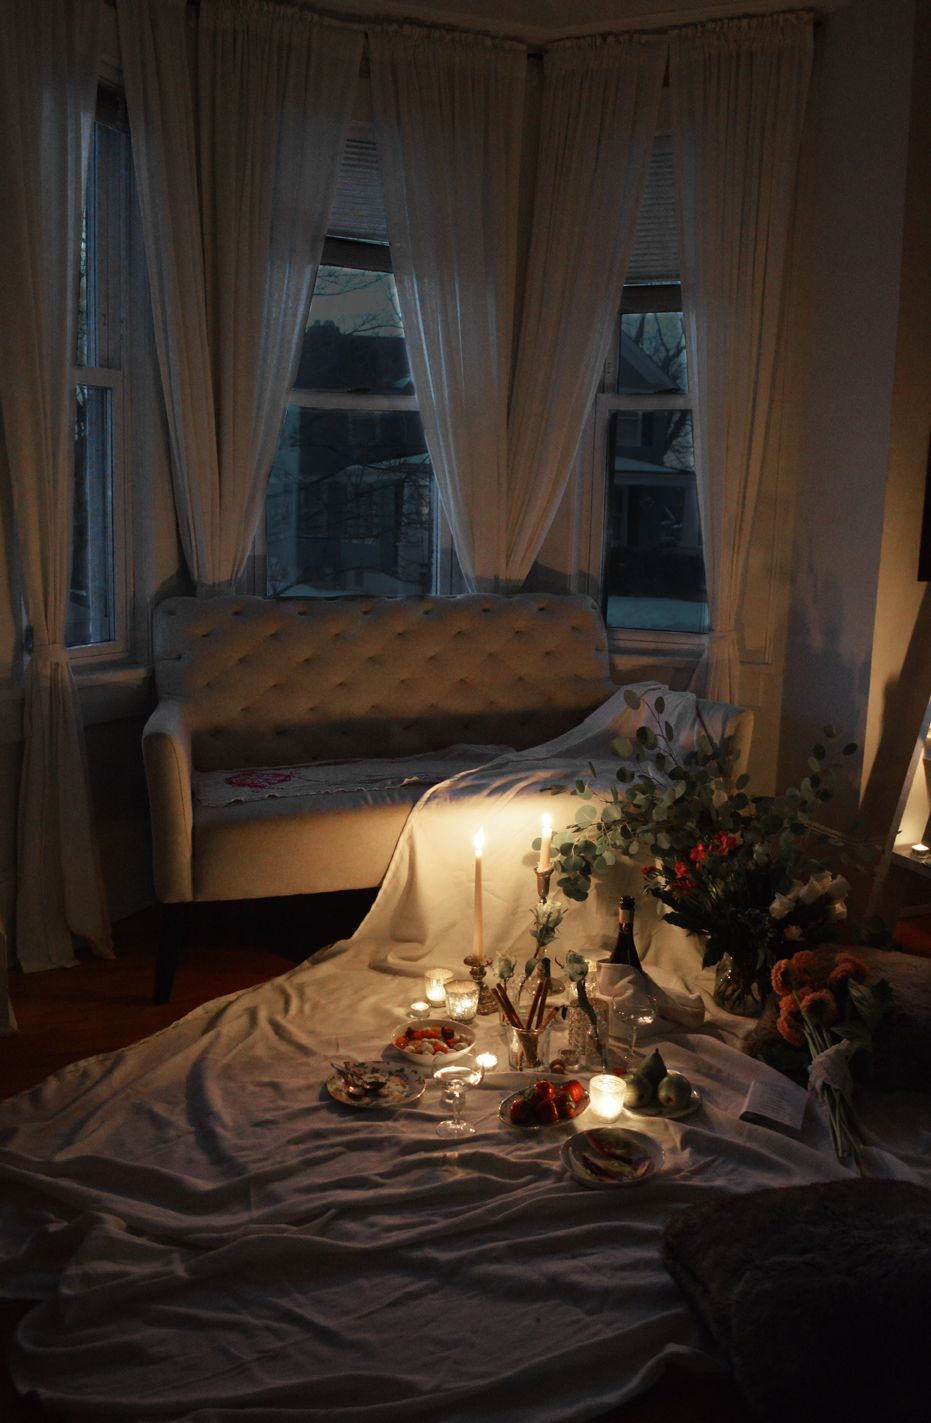 Romantic Bedroom At Night: At Home Date Nights, Romantic